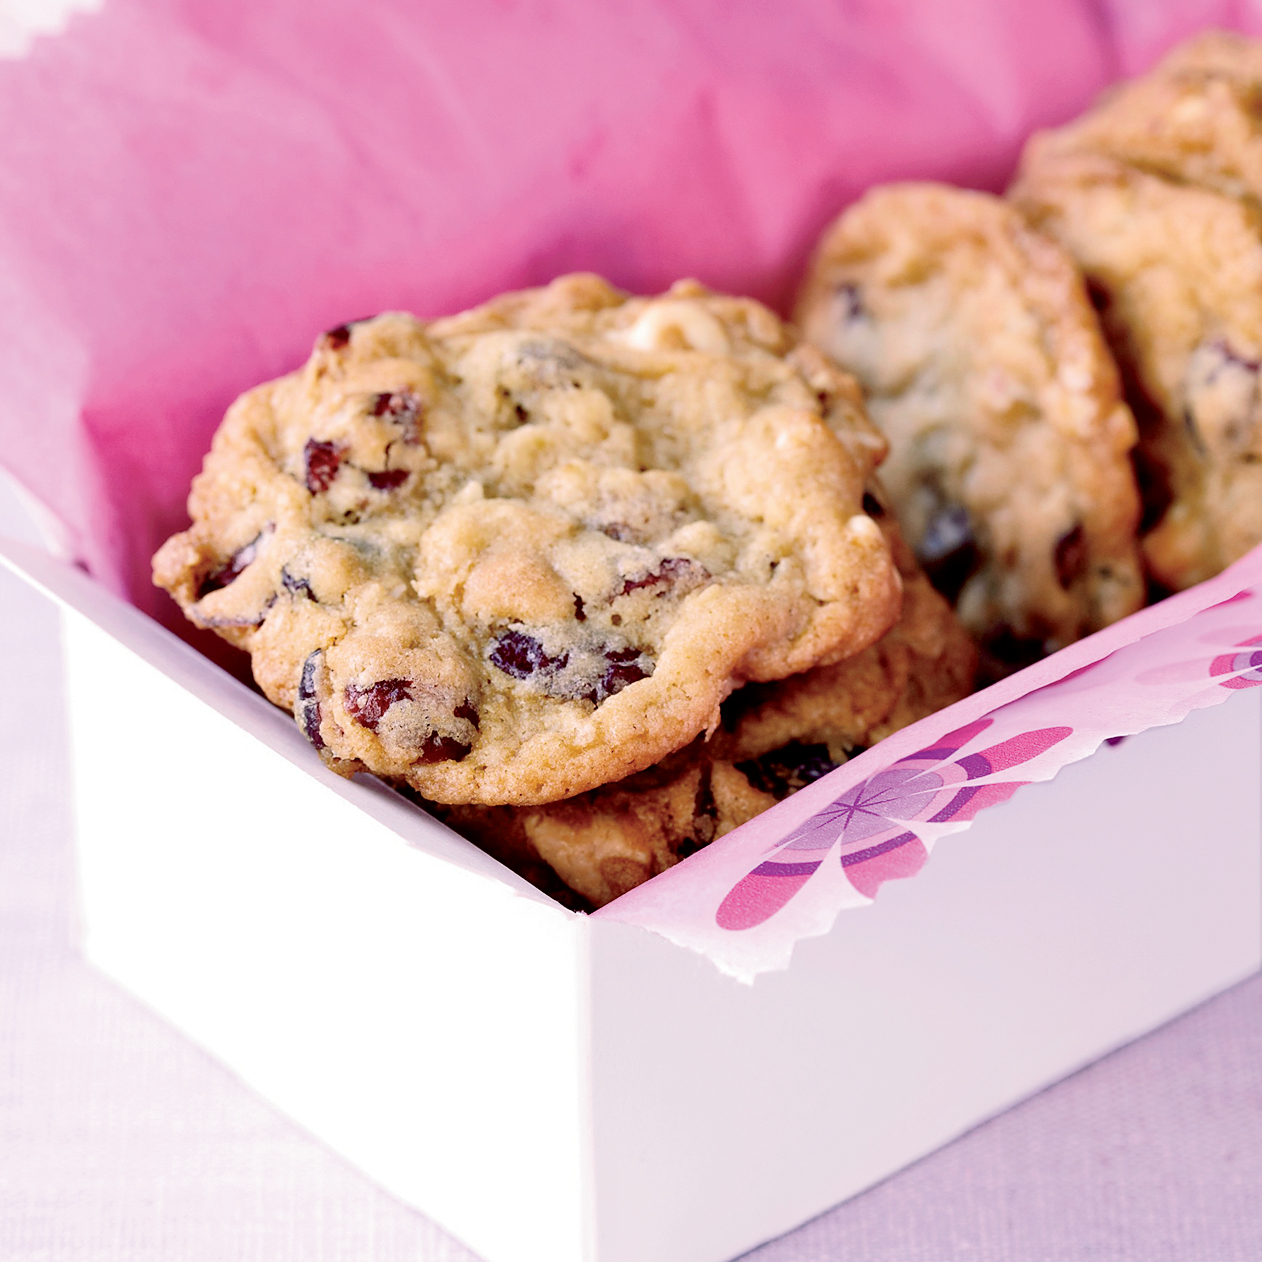 201111-r-dried-cranberry-and-chocolate-cookies.jpg